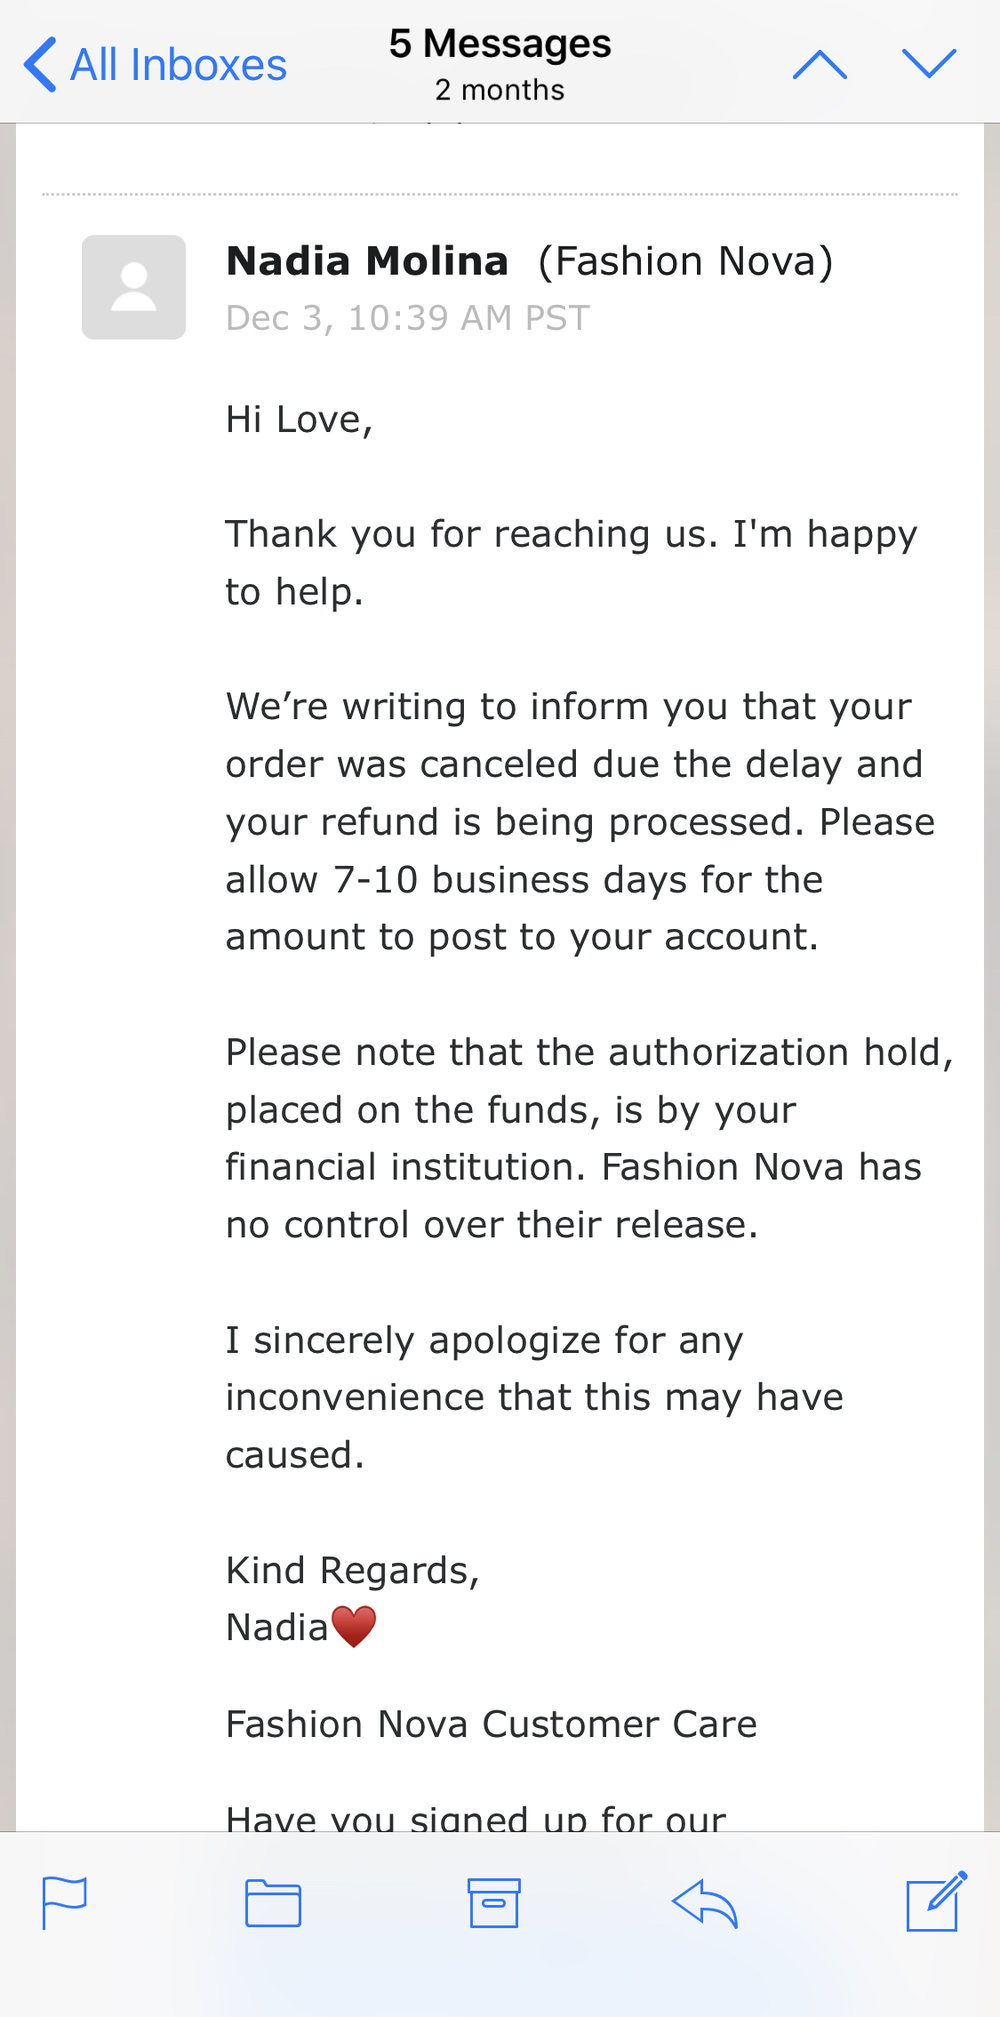 At the end of this as I reflect, I guess I expected to be treated in a different manner with a company who is supposedly one of the best in fashion. I will just rock the fashion nova jeans I already have. As a consumer/customer who feels betrayed I would never order anything from them ever again. I say that because it took me almost 2 months to get an answer, and they wouldn't have done anything or made sure I had my package if I didn't write to find out.